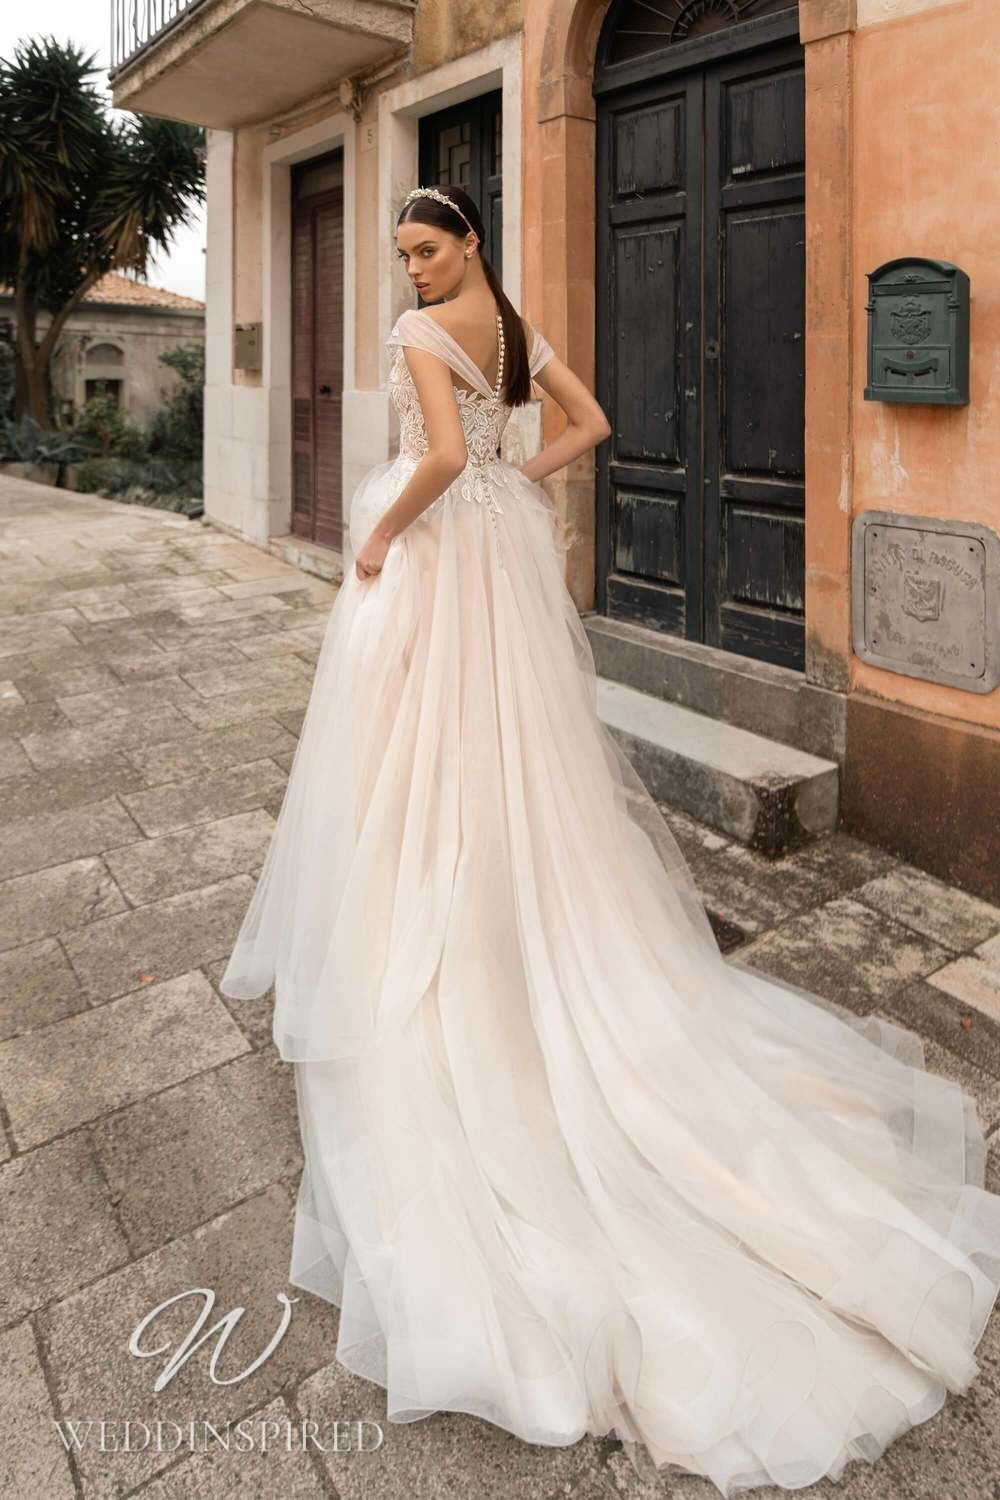 A Lussano 2021 lace and tulle A-line wedding dress